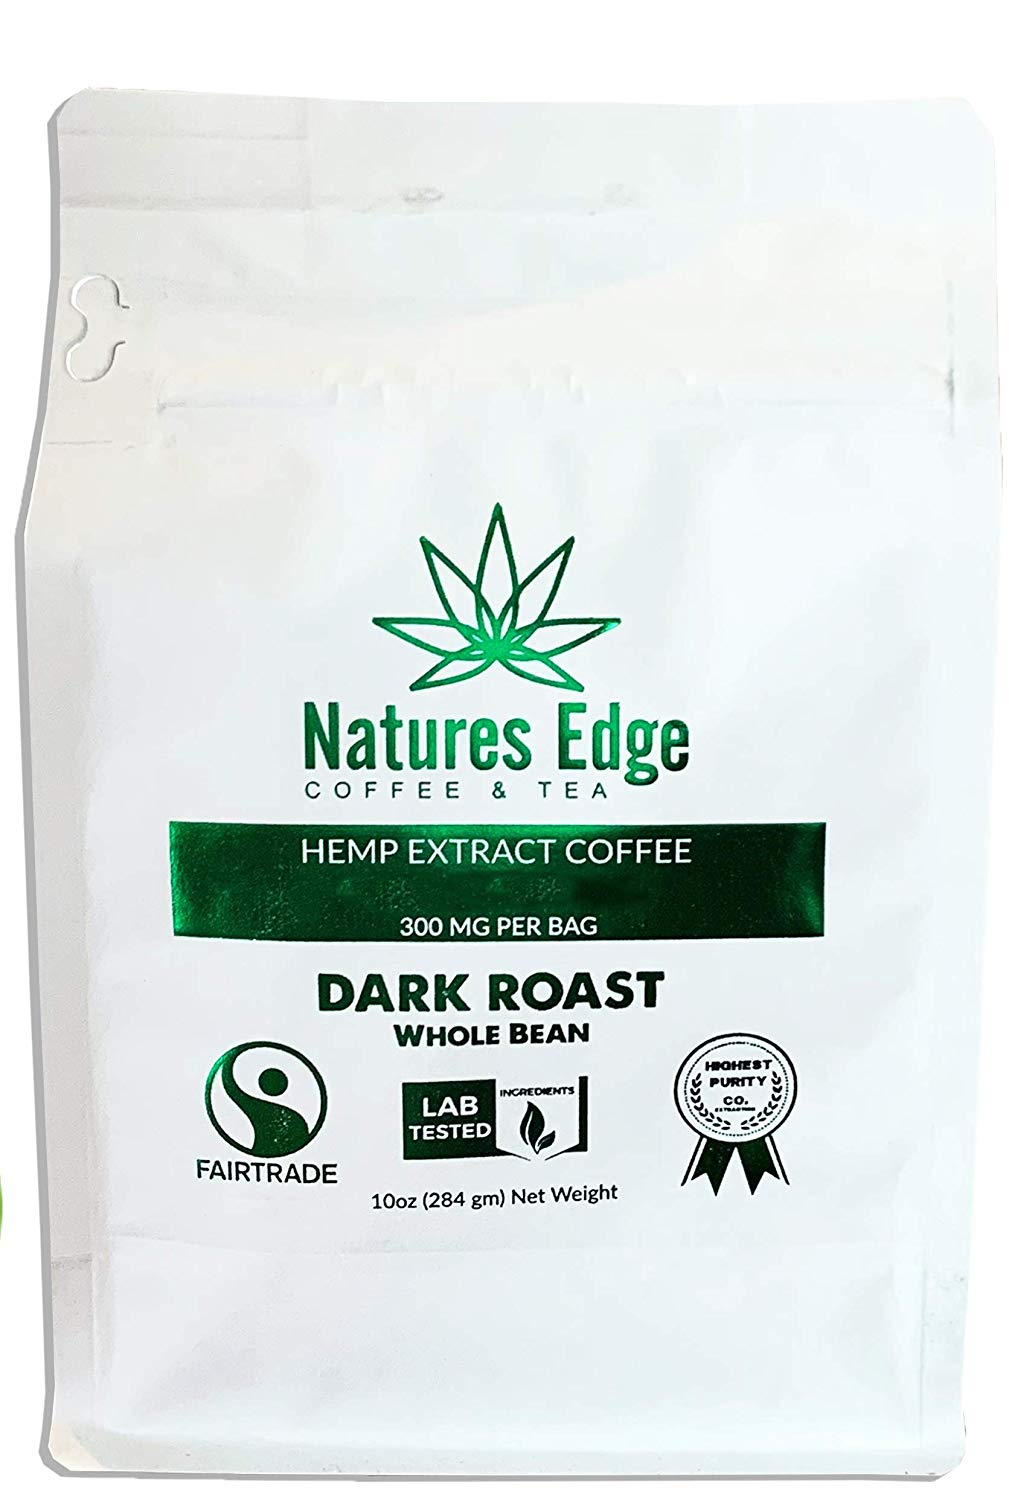 Natures Edge Fair Trade Shade Grown Coffee with MCT Oil Review